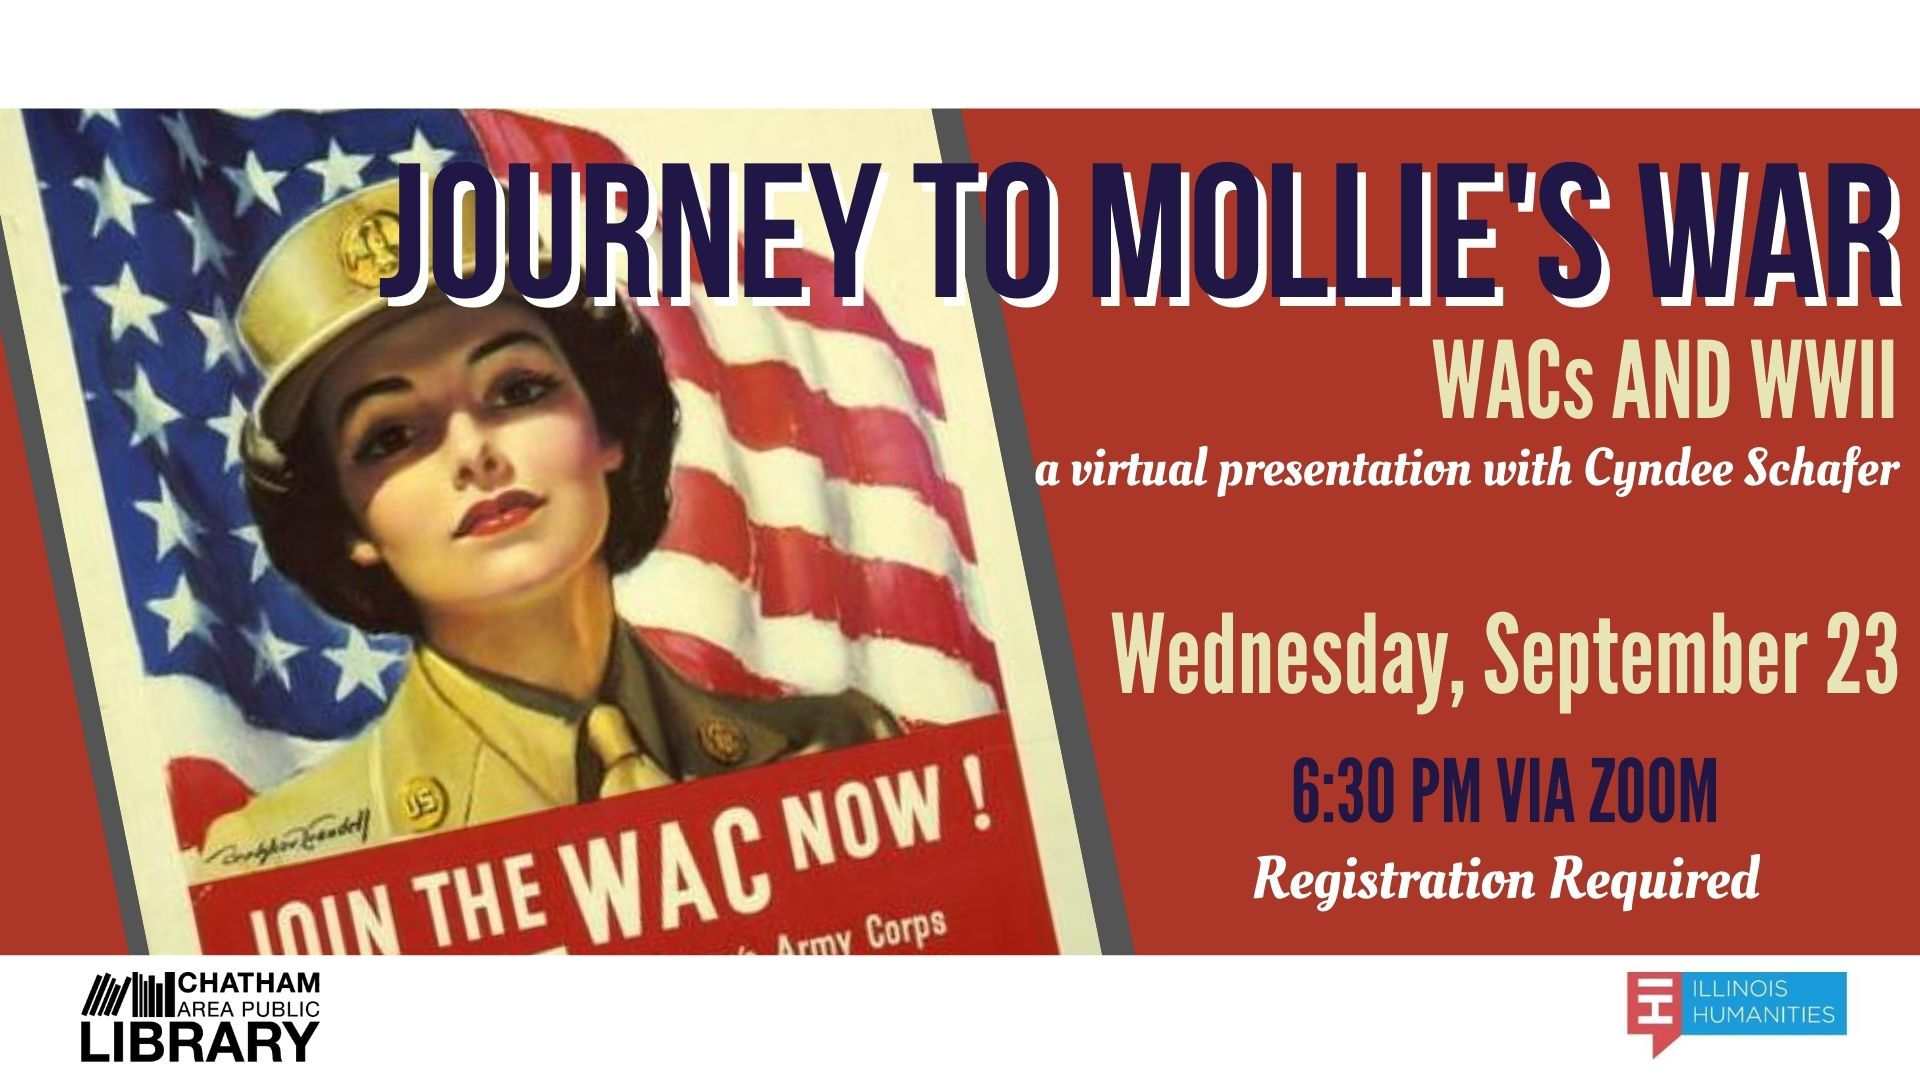 Chatham Area Public Library to Virtually Host Presentation on the Women's Army Corp in World War II